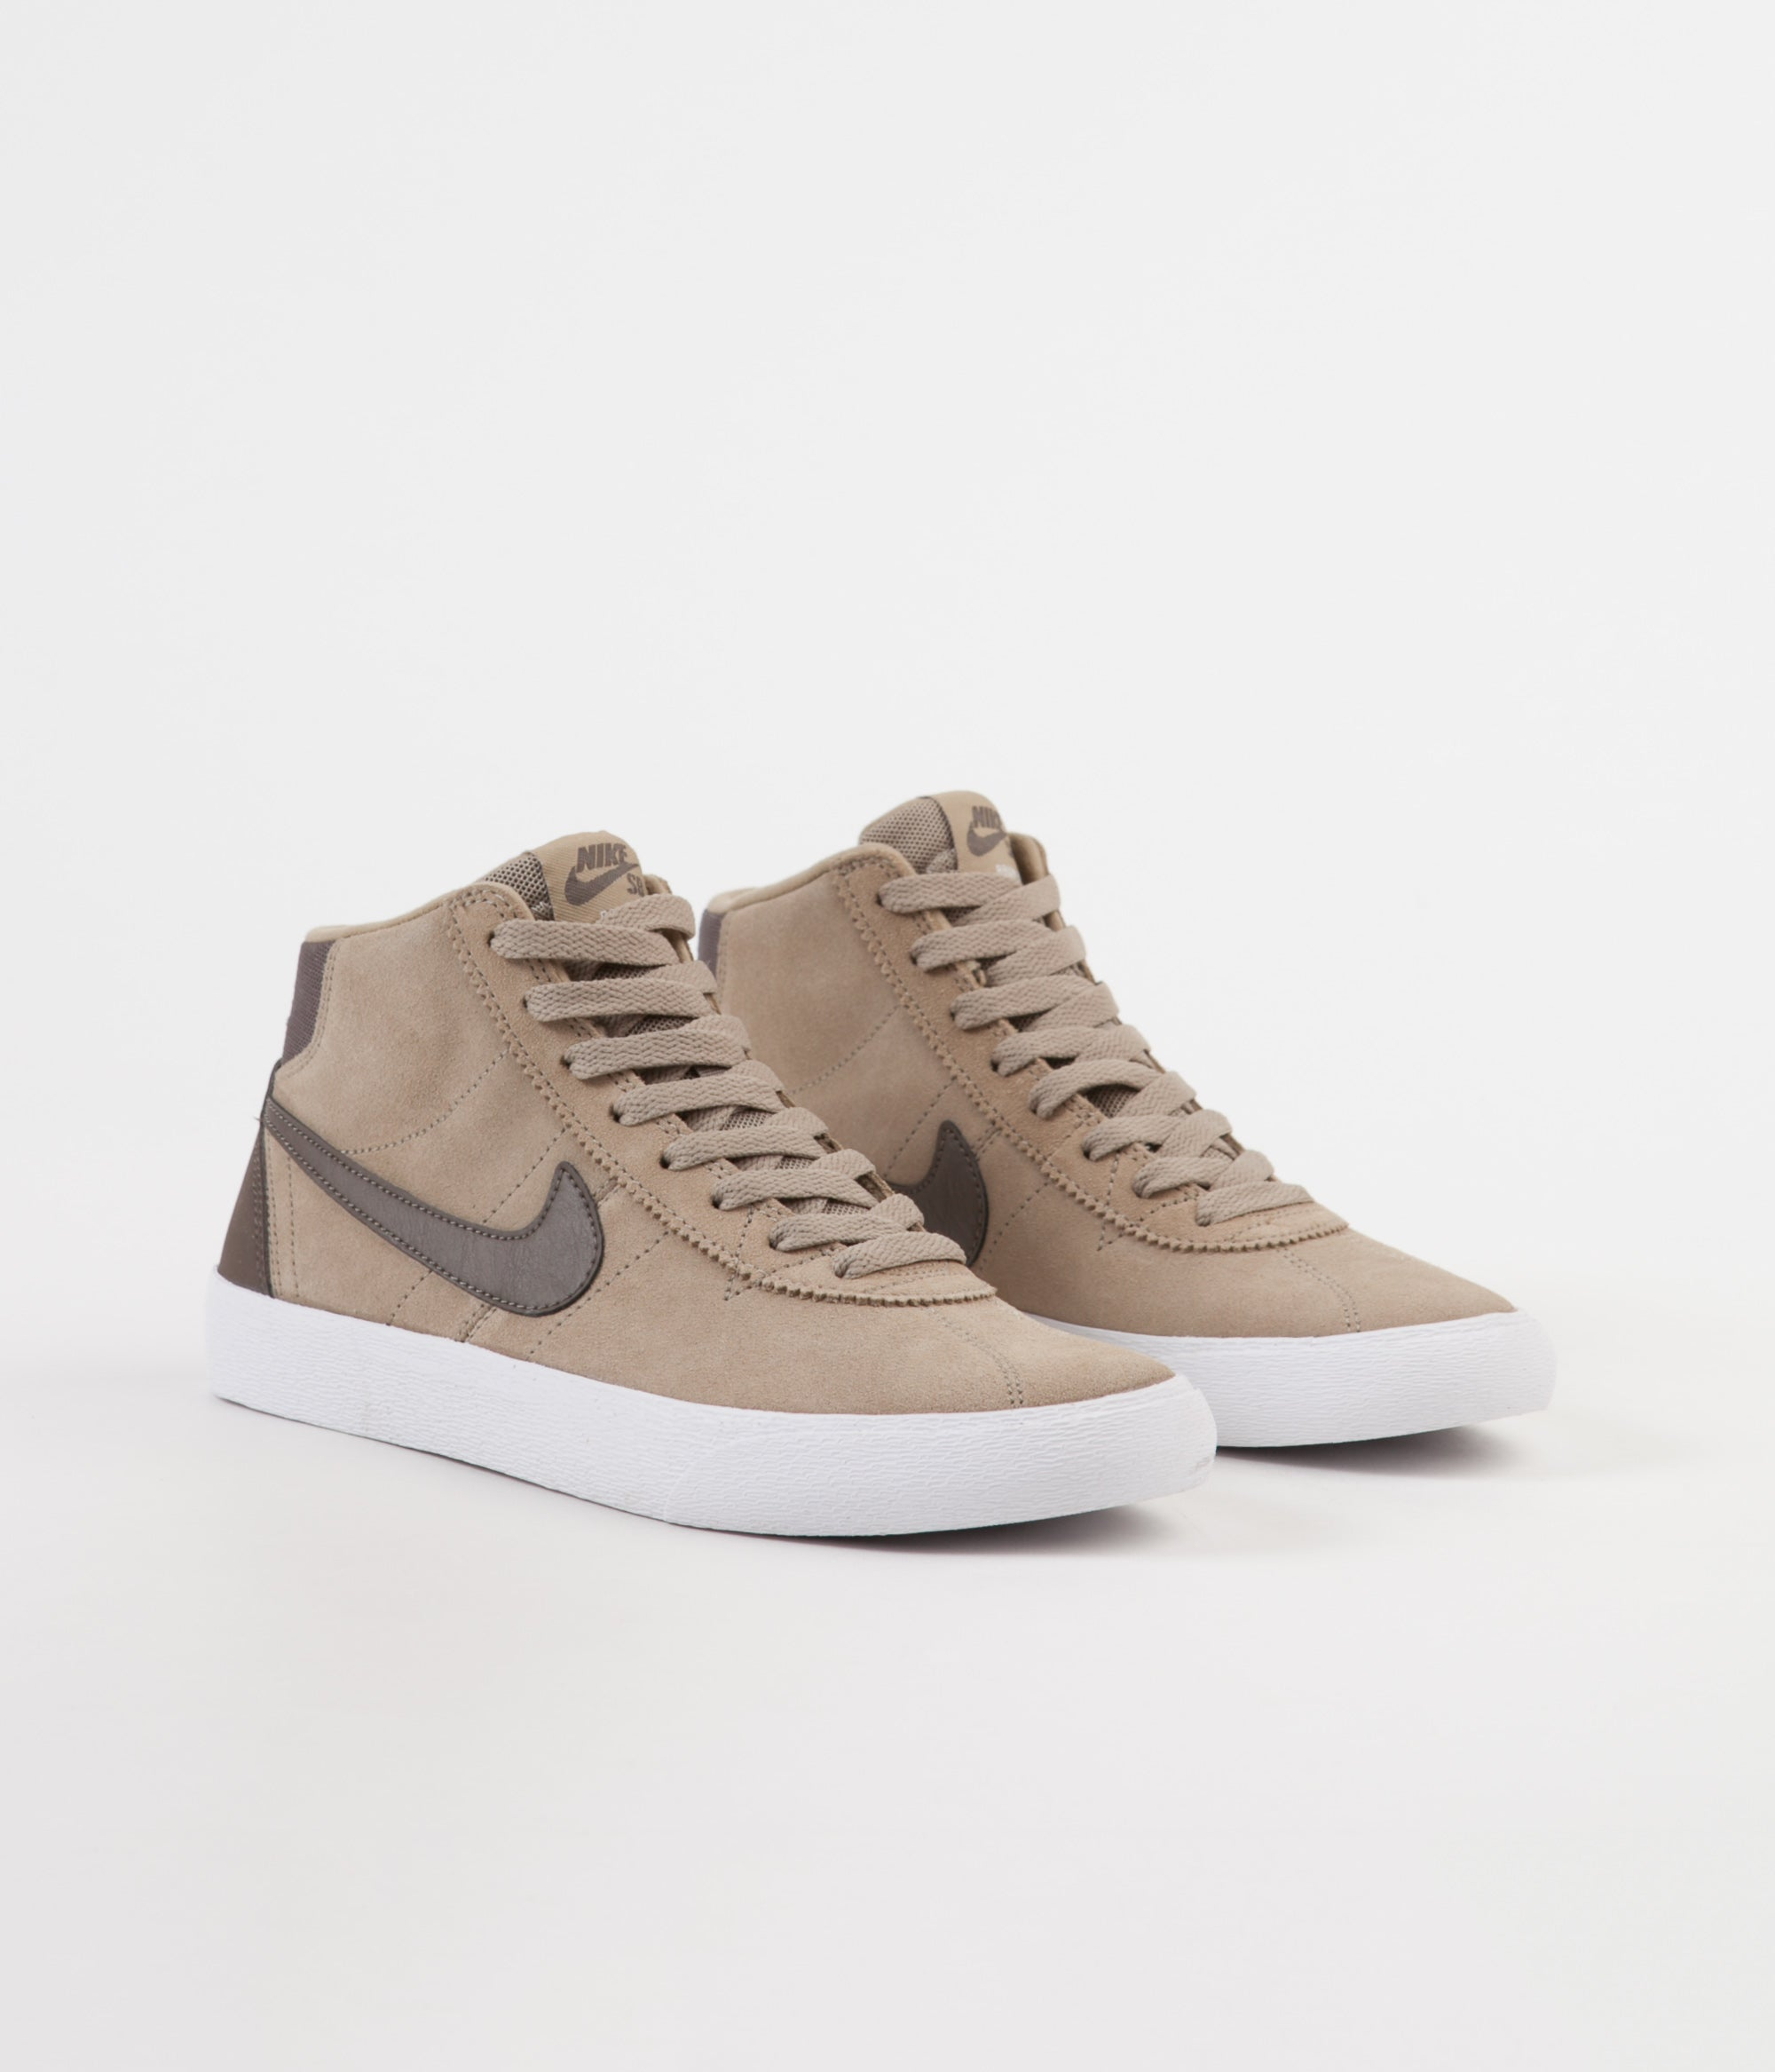 c246b251d5a5 ... Nike SB Women s Bruin Hi Shoes - Khaki   Ridgerock - White ...